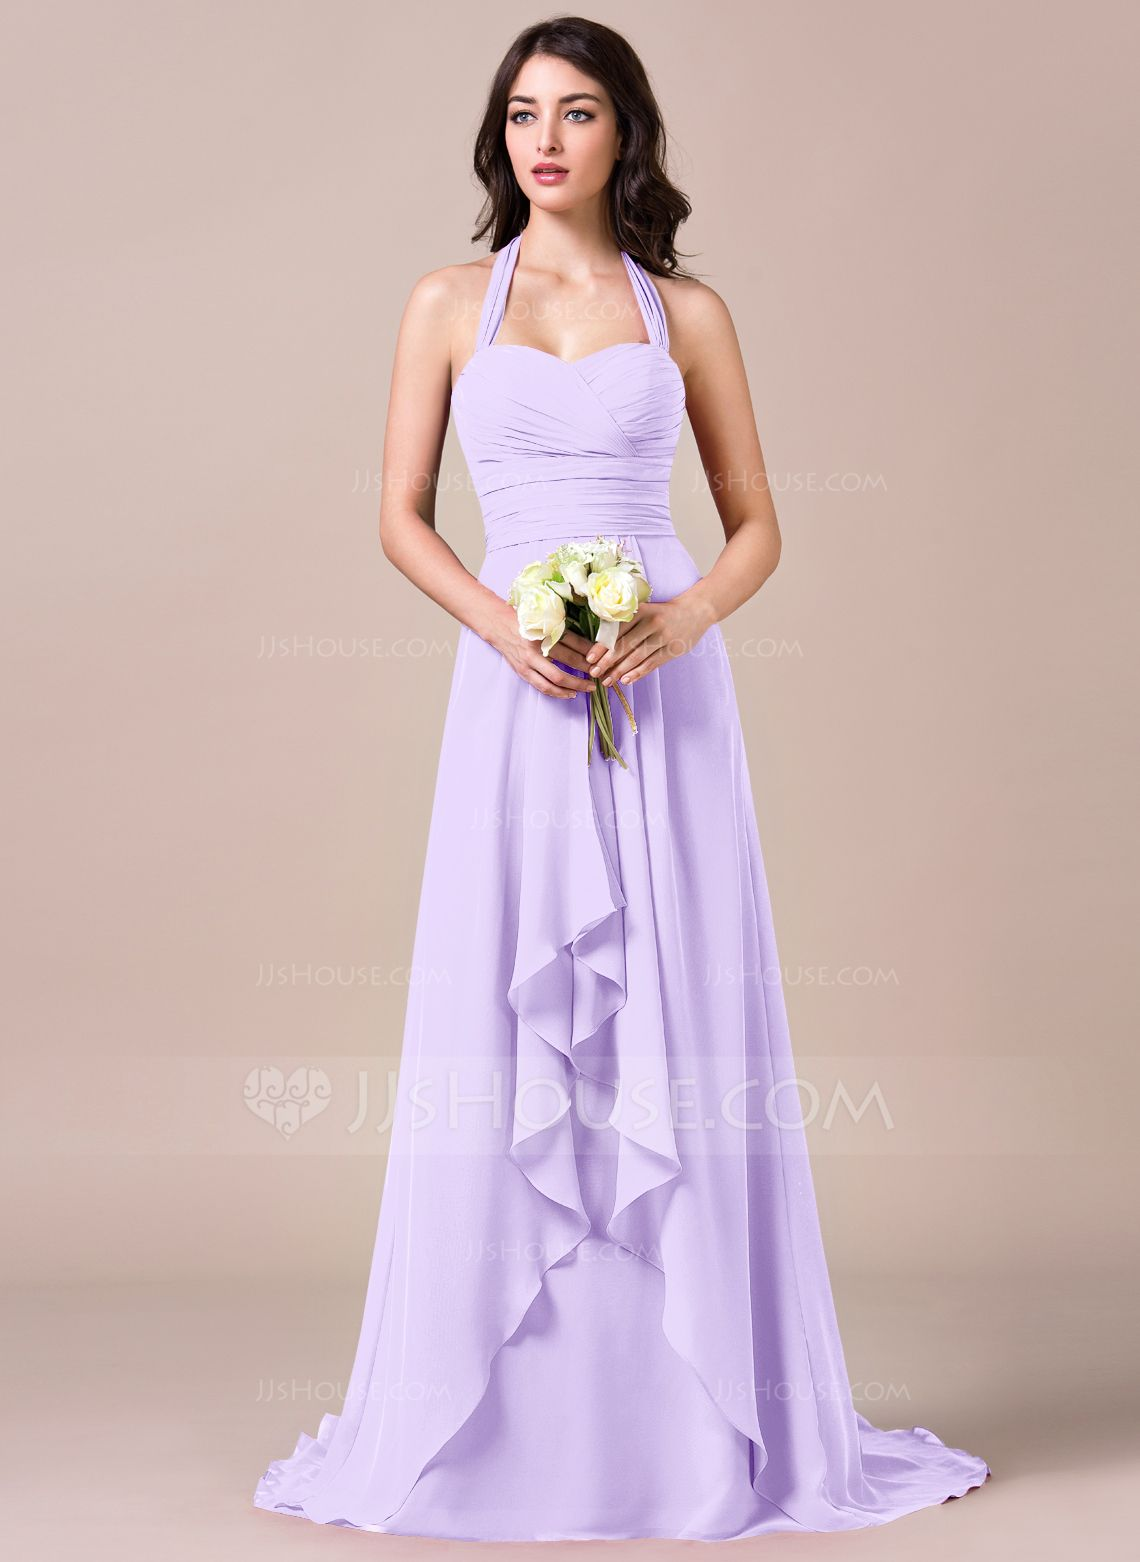 A lineprincess halter sweep train chiffon bridesmaid dress with a lineprincess halter sweep train chiffon bridesmaid dress with bows ombrellifo Images